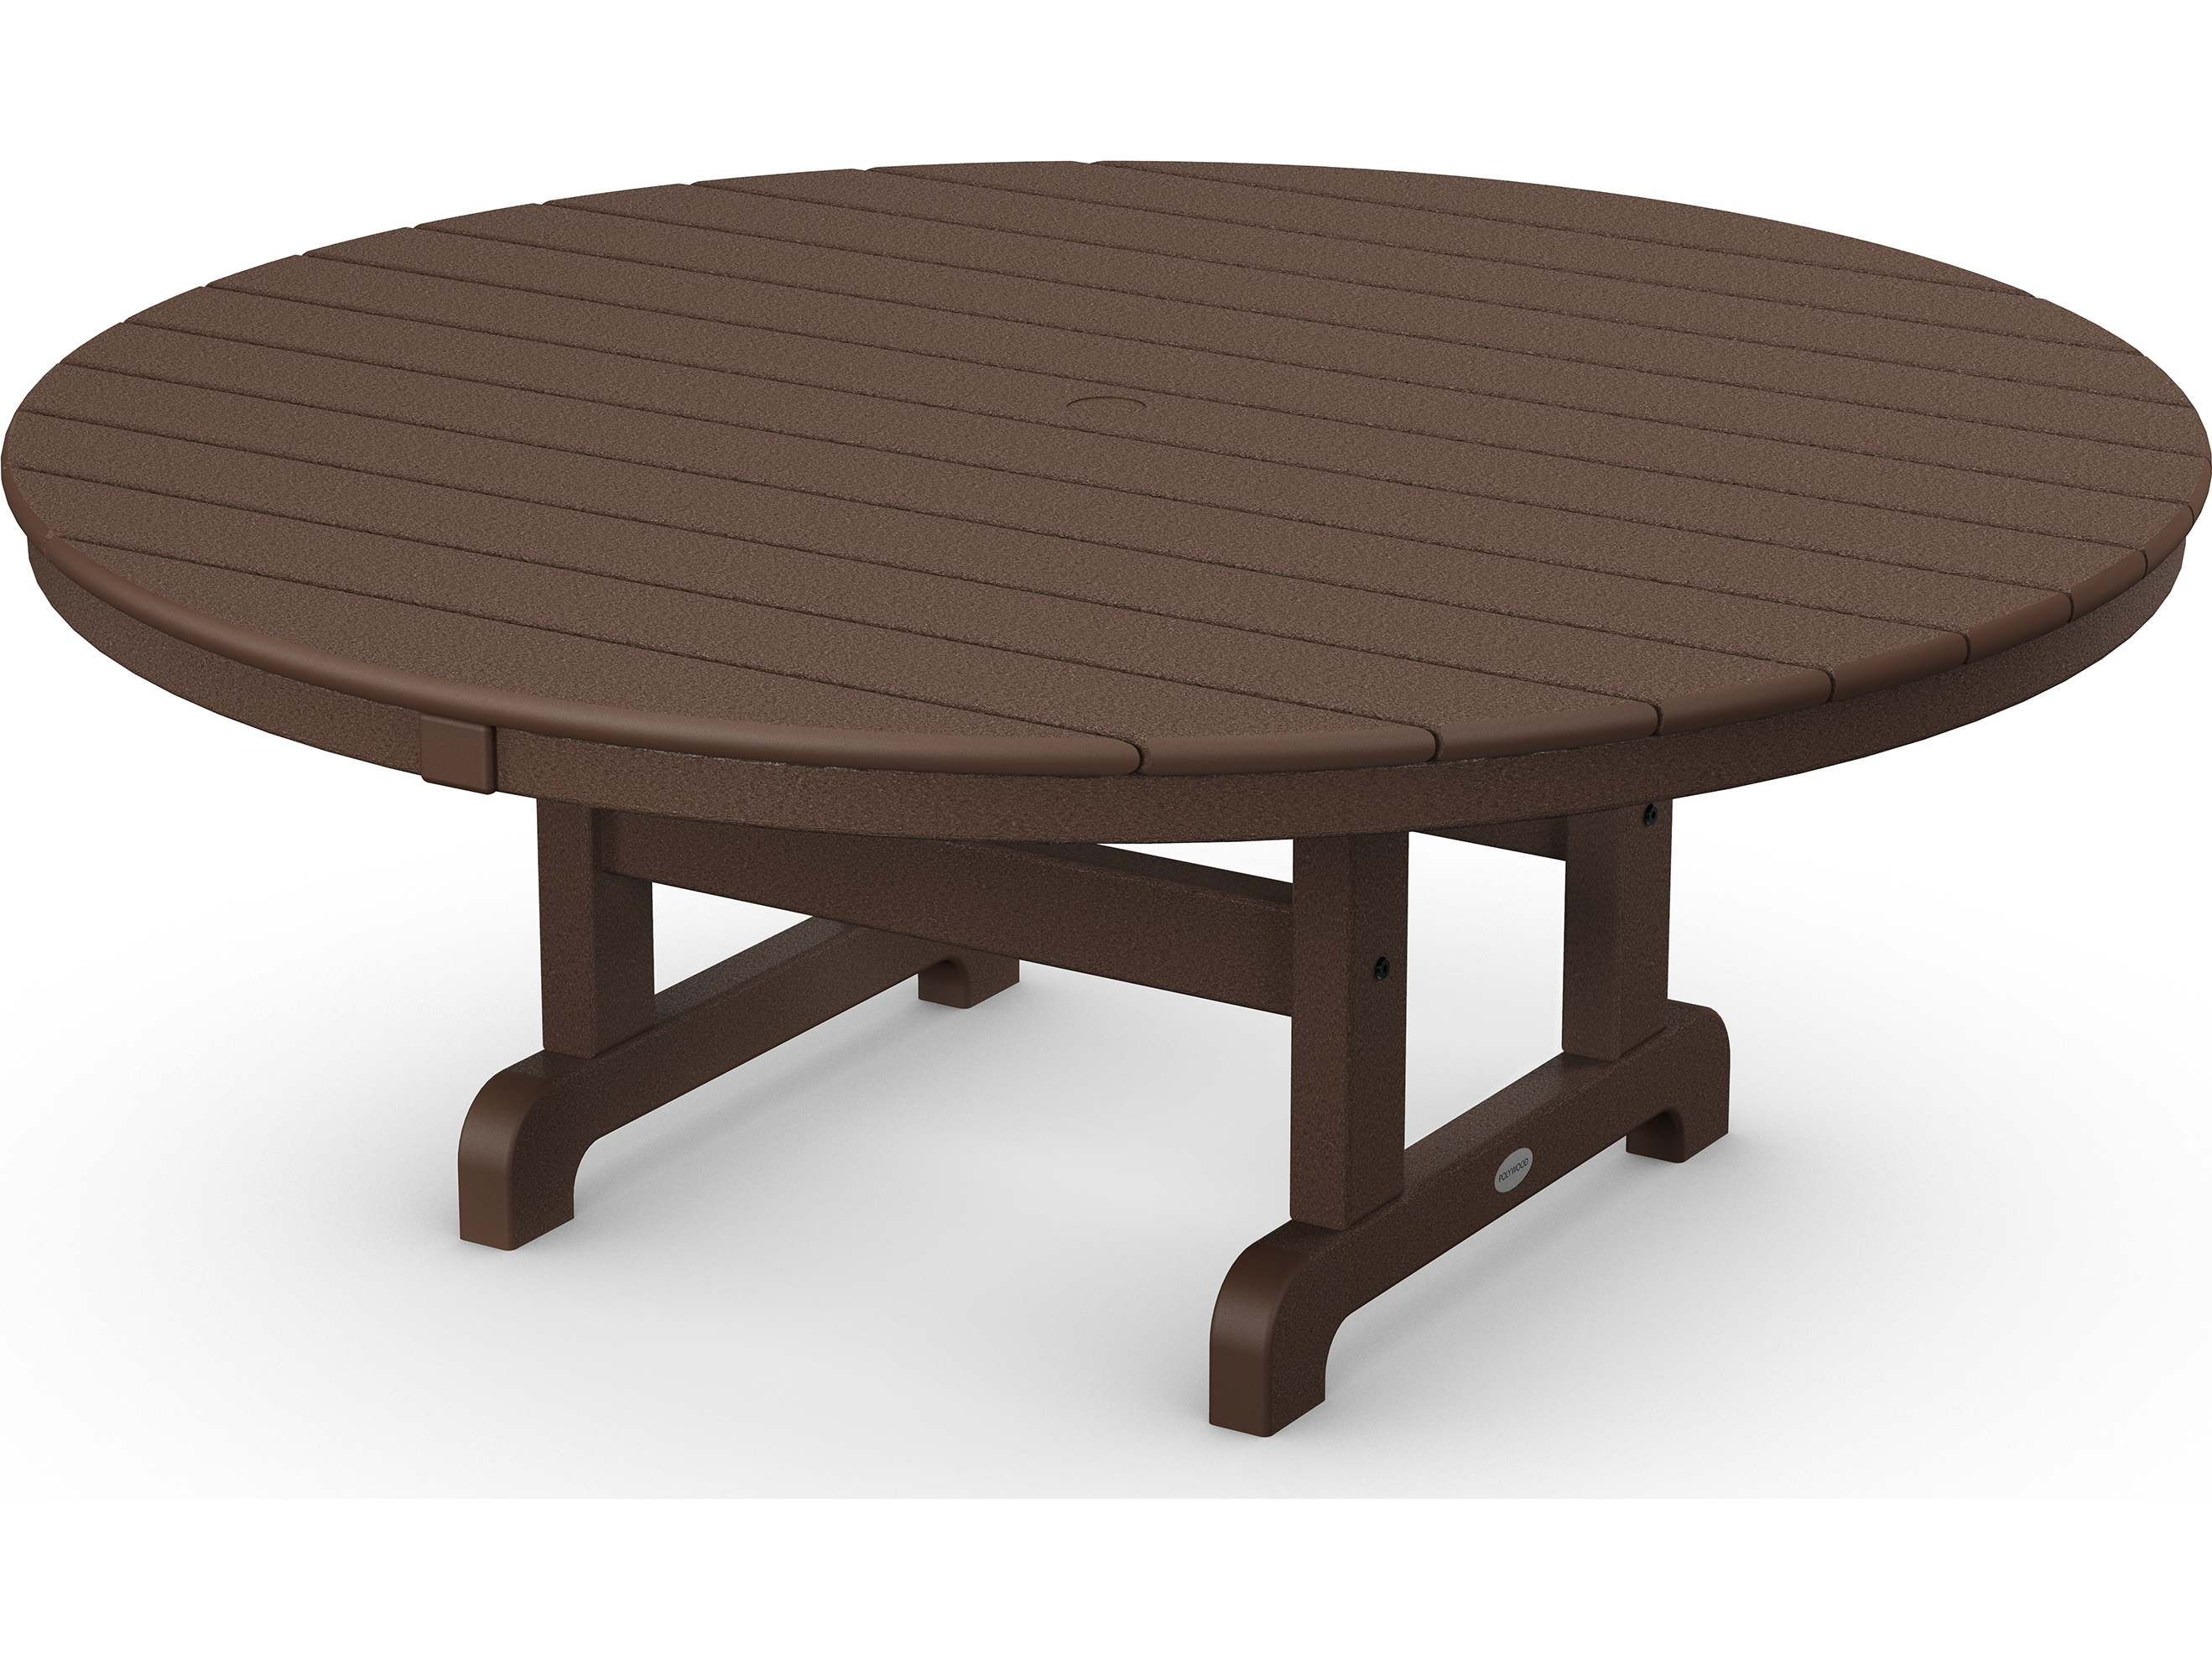 Polywood 174 Traditional Recycled Plastic 48 Round Chat Table